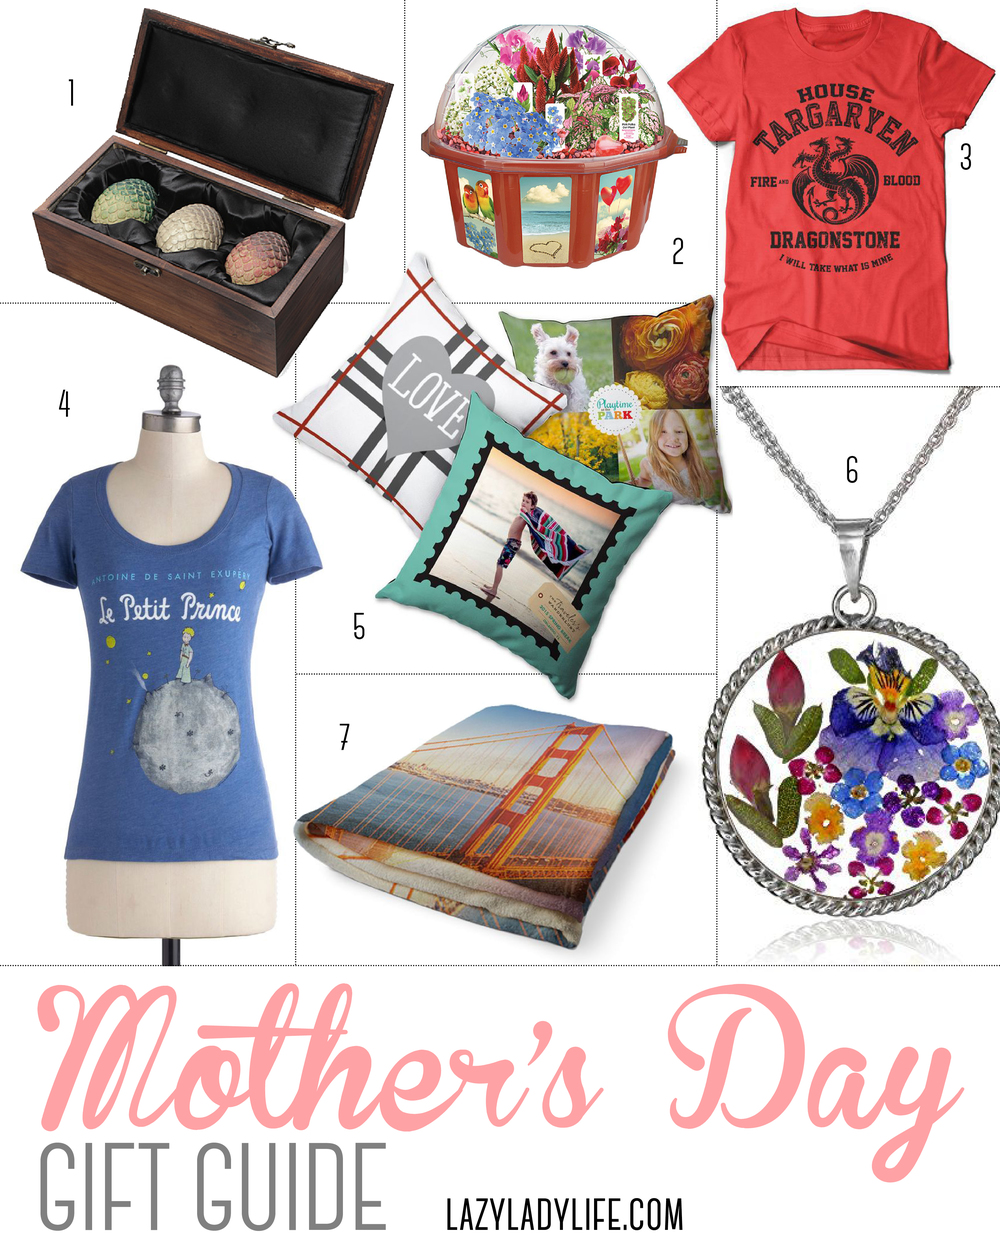 MothersDayGifts